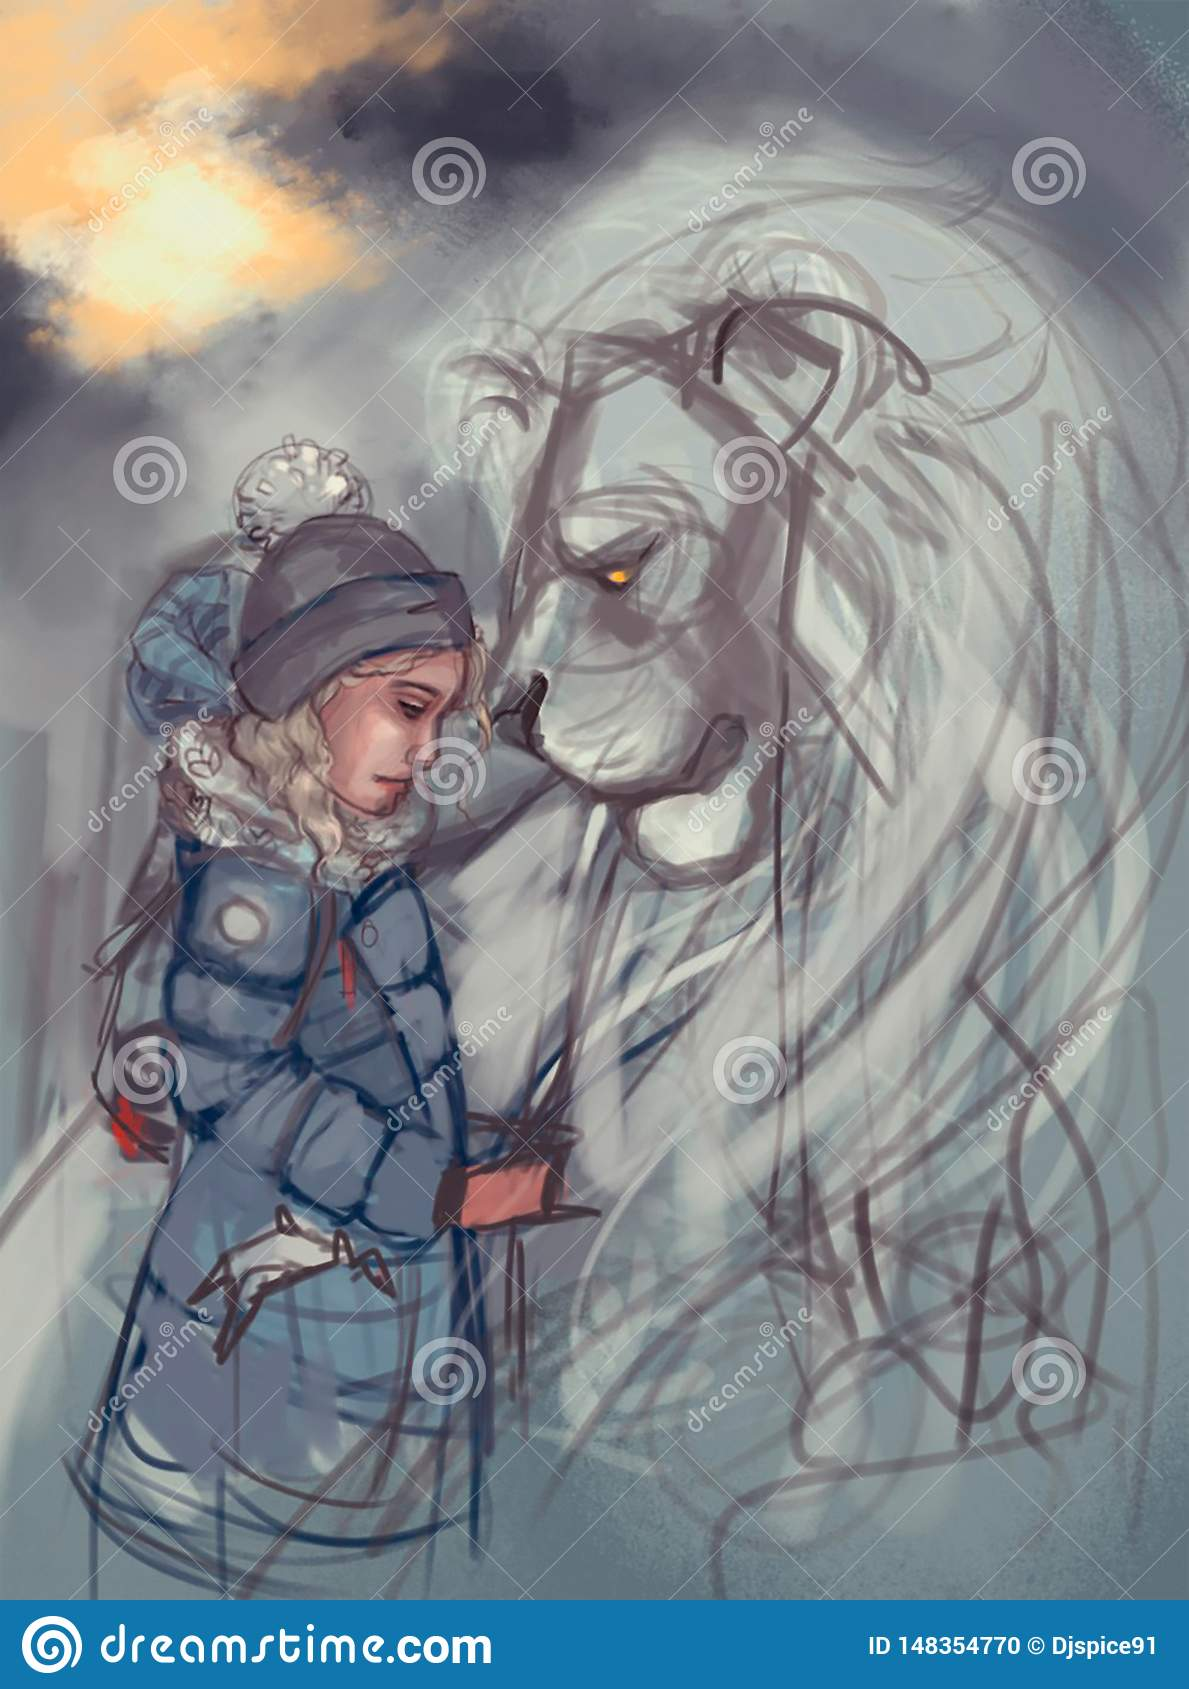 Illustration of a girl and a lion